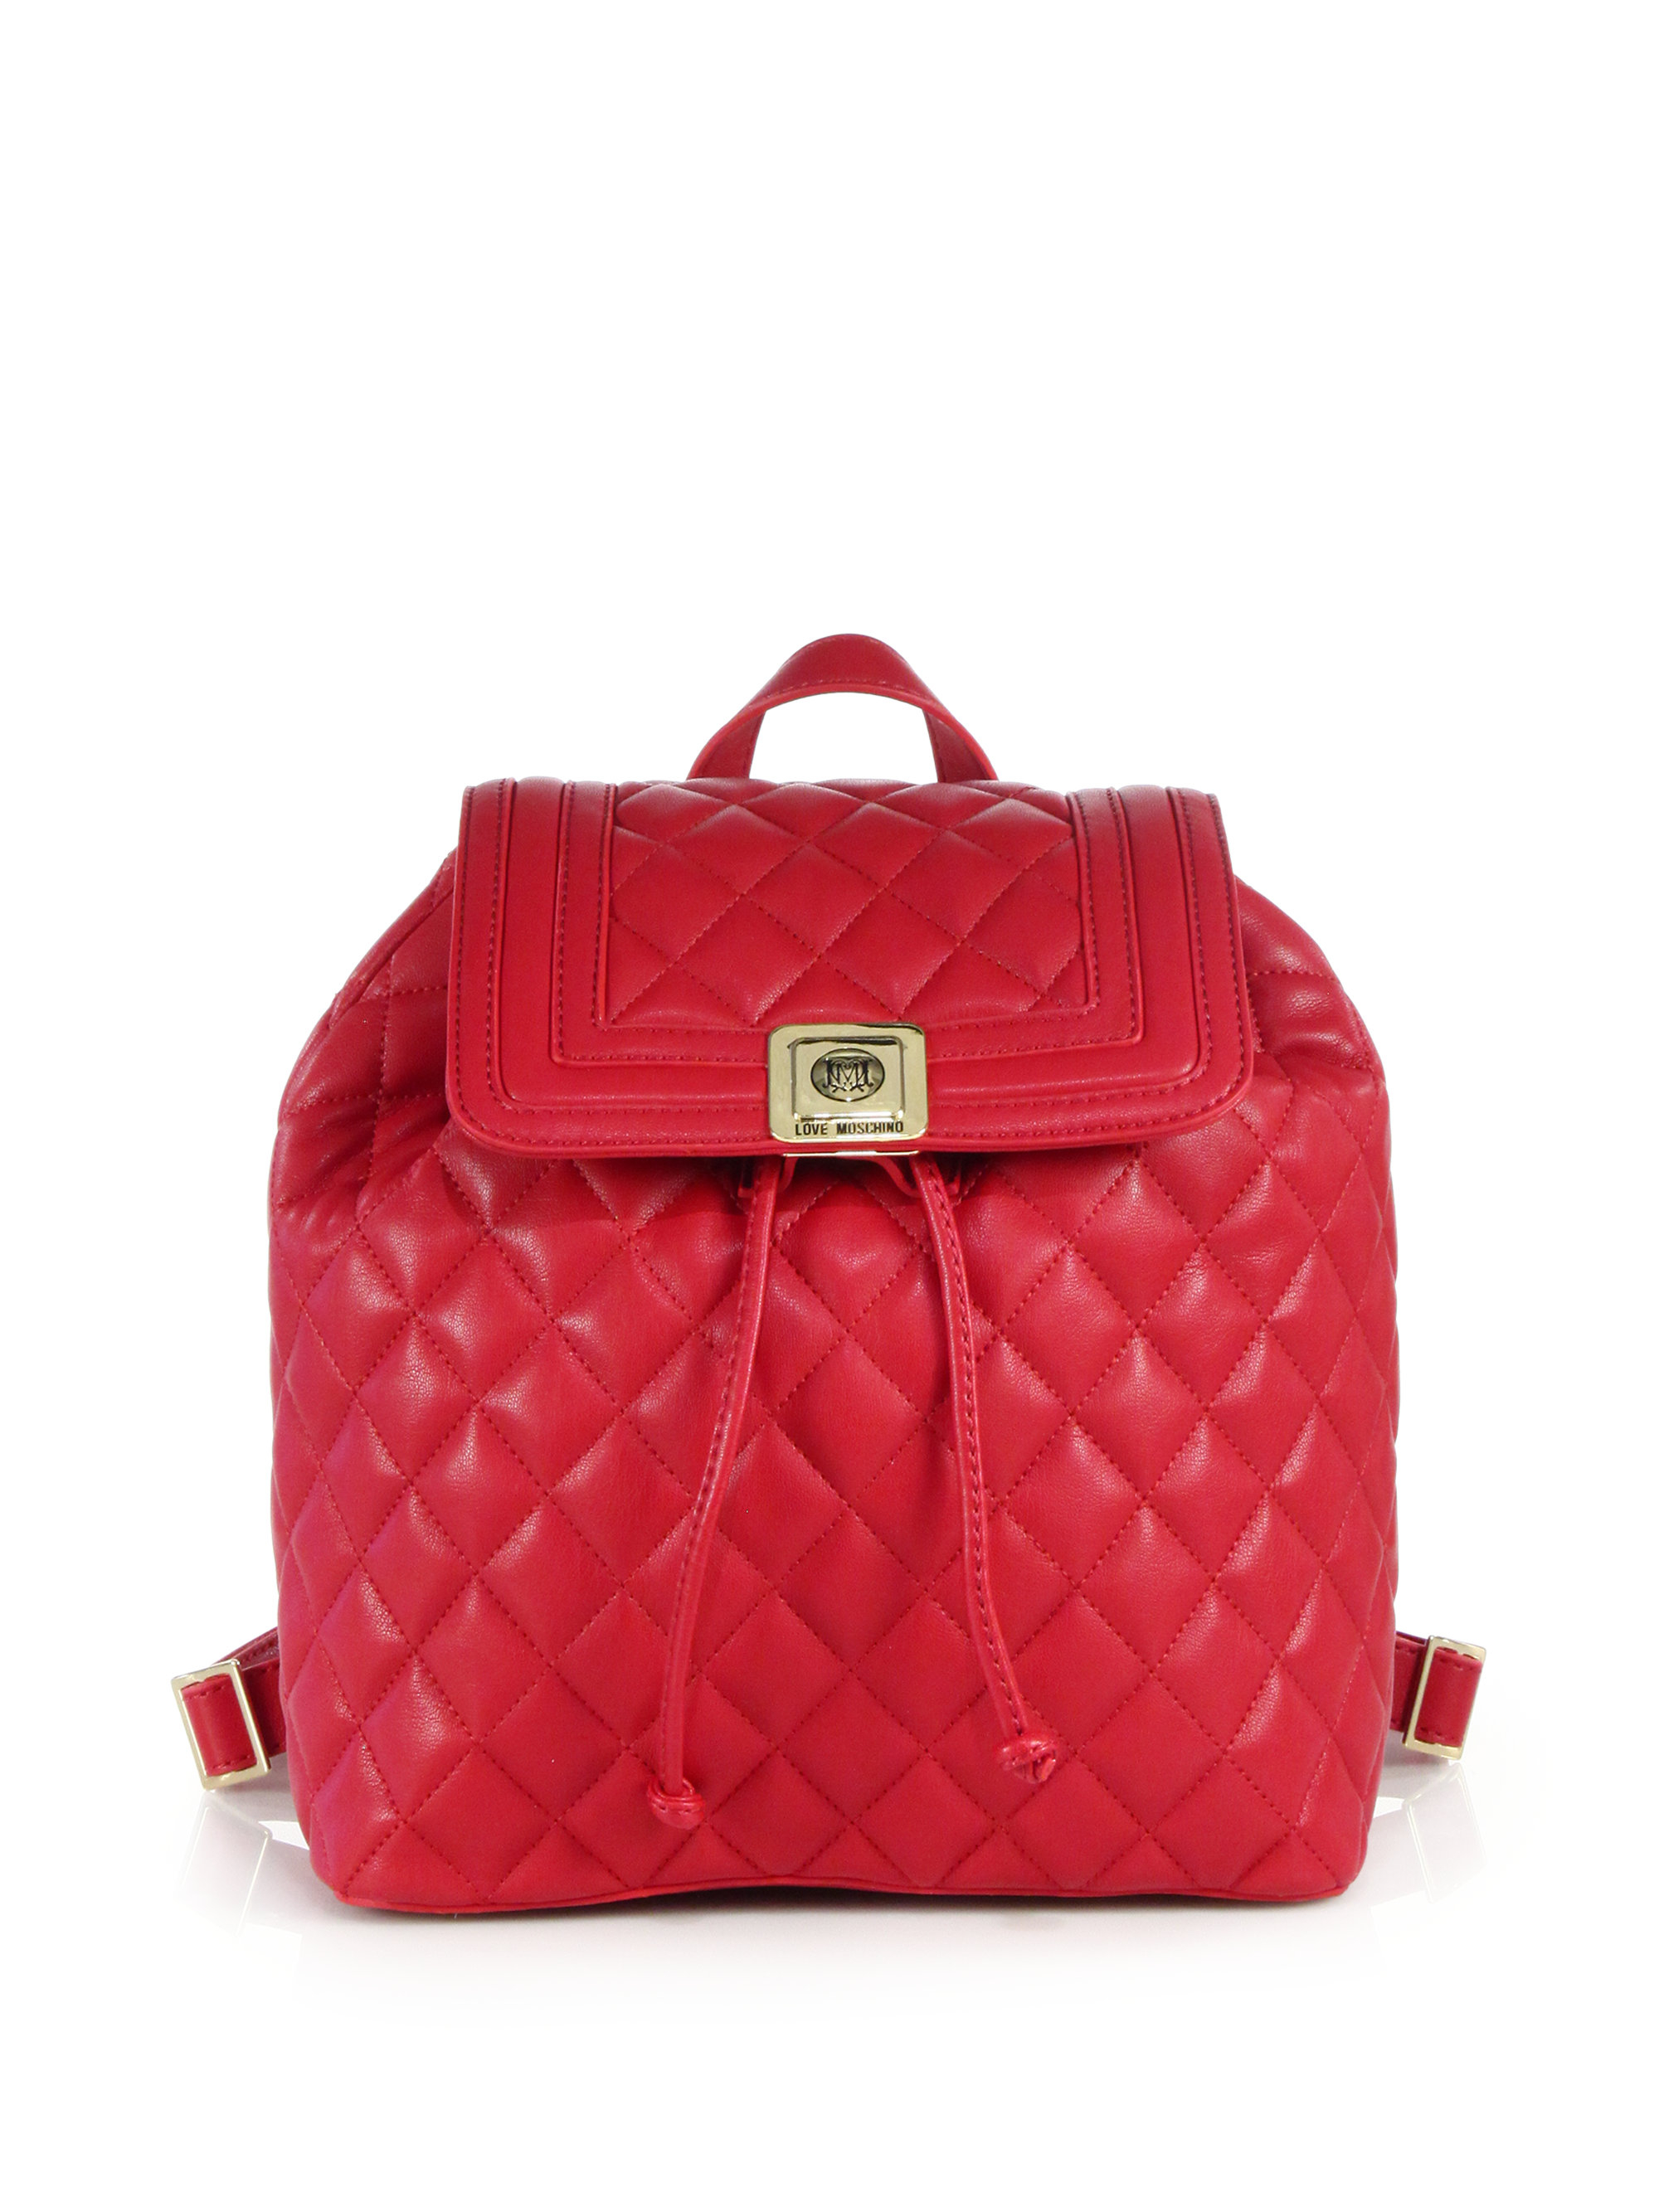 Lyst - Love moschino Superquilted Fold-over in Red : quilted faux leather backpack - Adamdwight.com